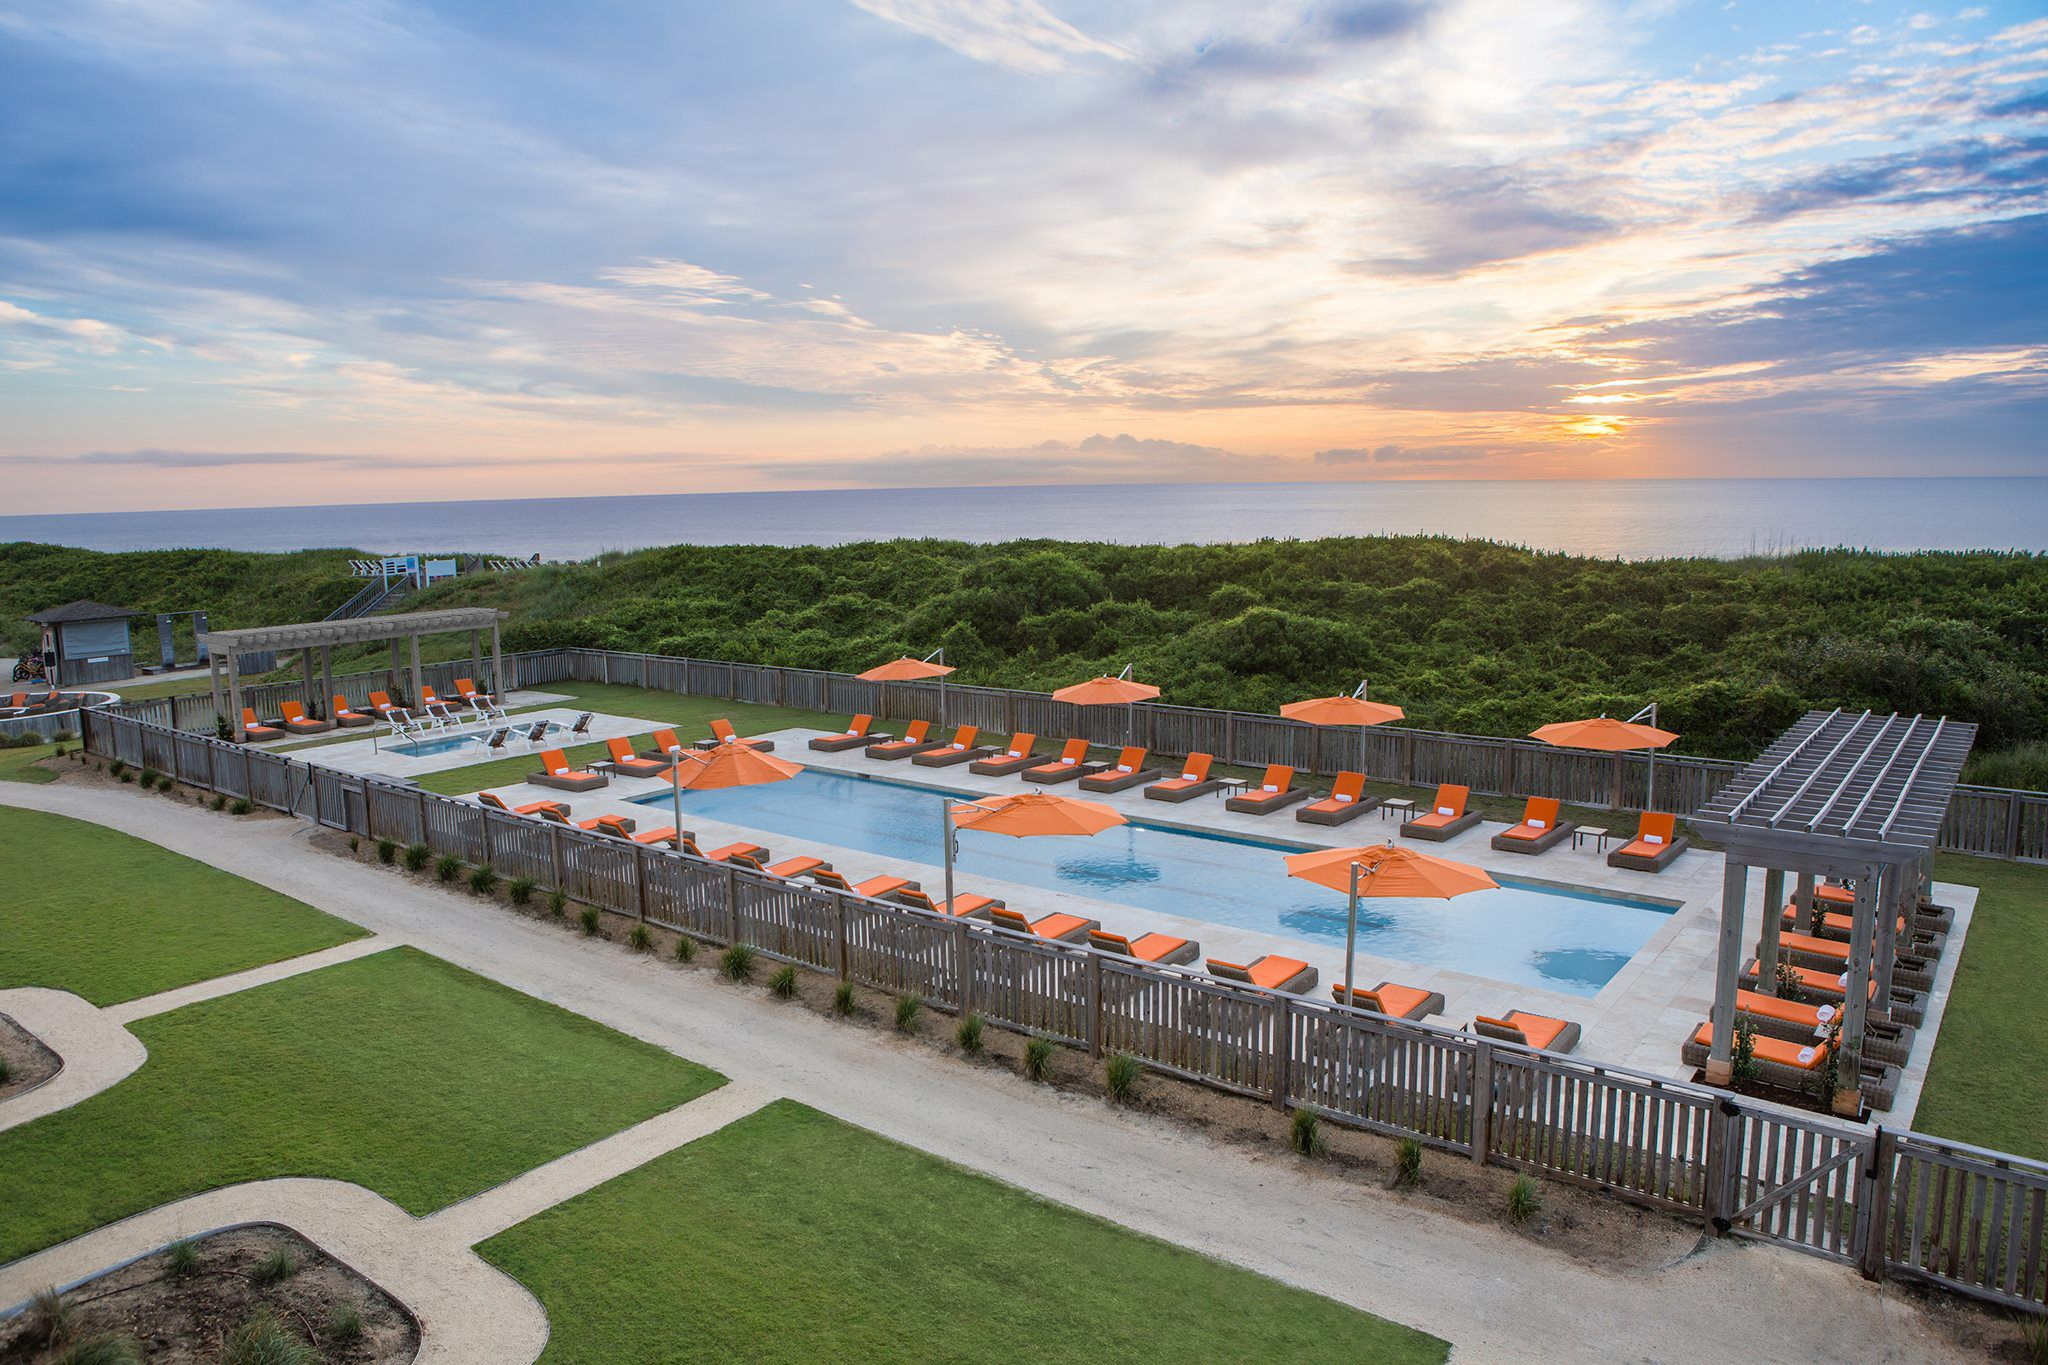 The Most Romantic Coastal Hotels in the United States